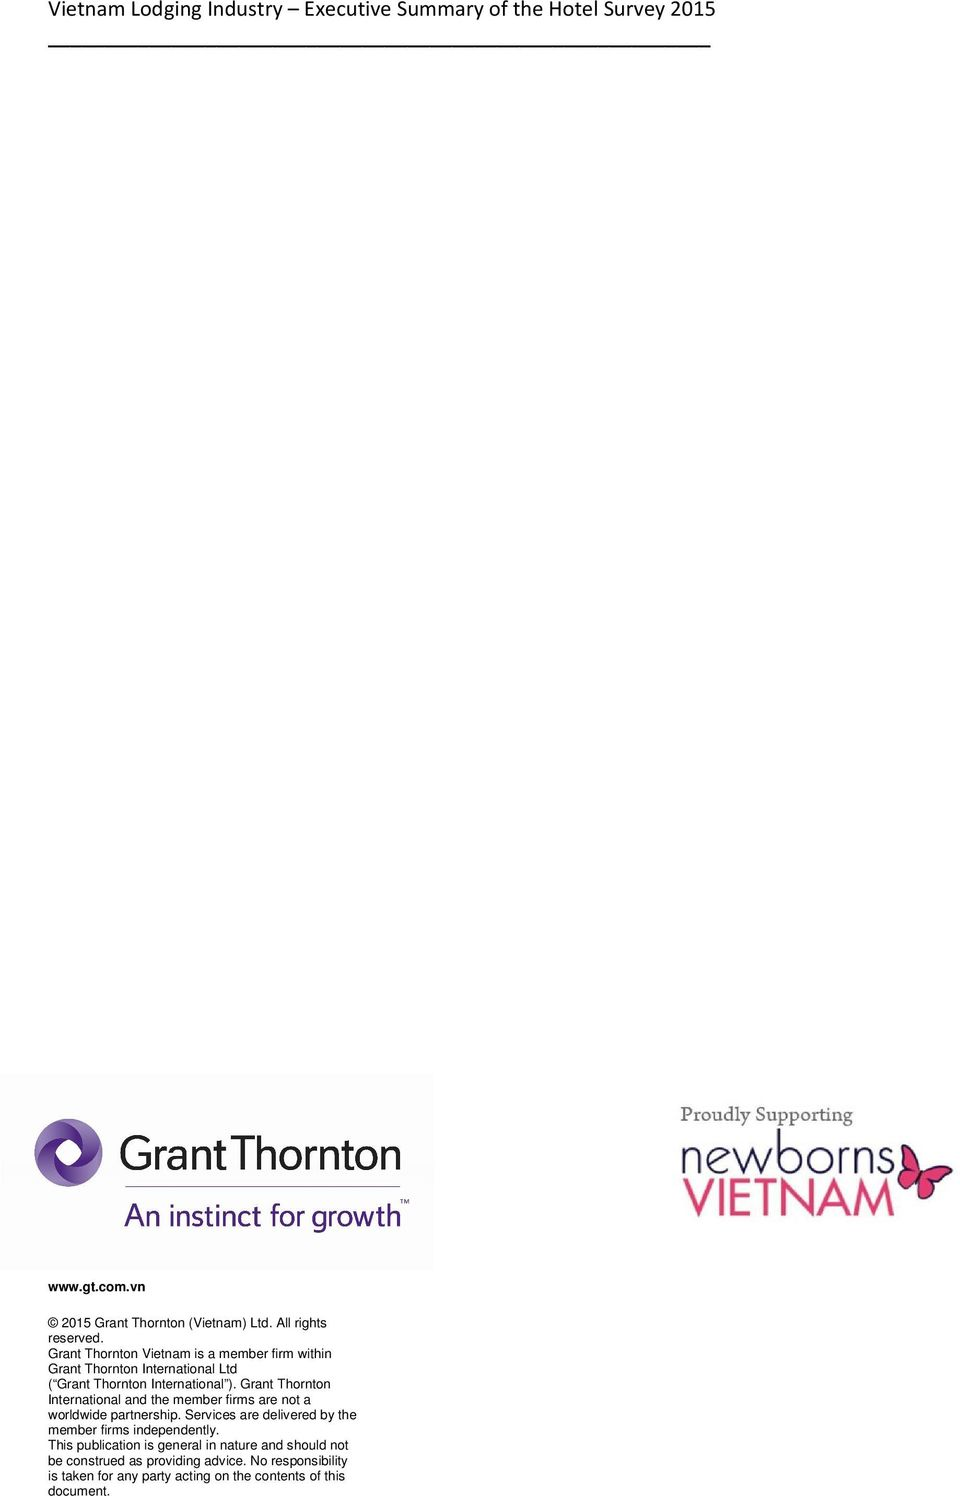 Grant Thornton International and the member firms are not a worldwide partnership.